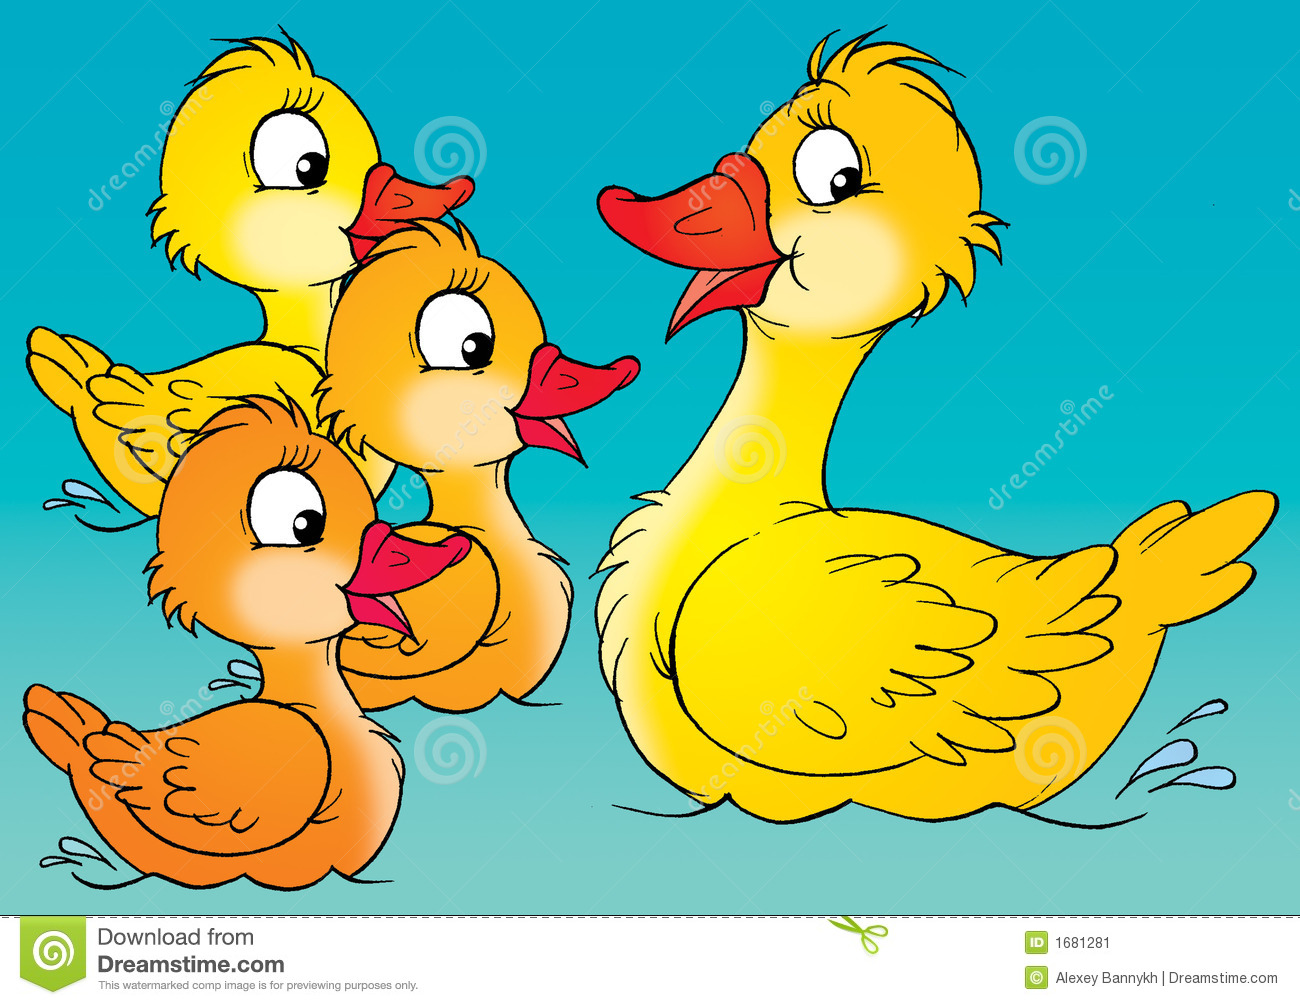 Duck and duckling clipart 6 » Clipart Station.